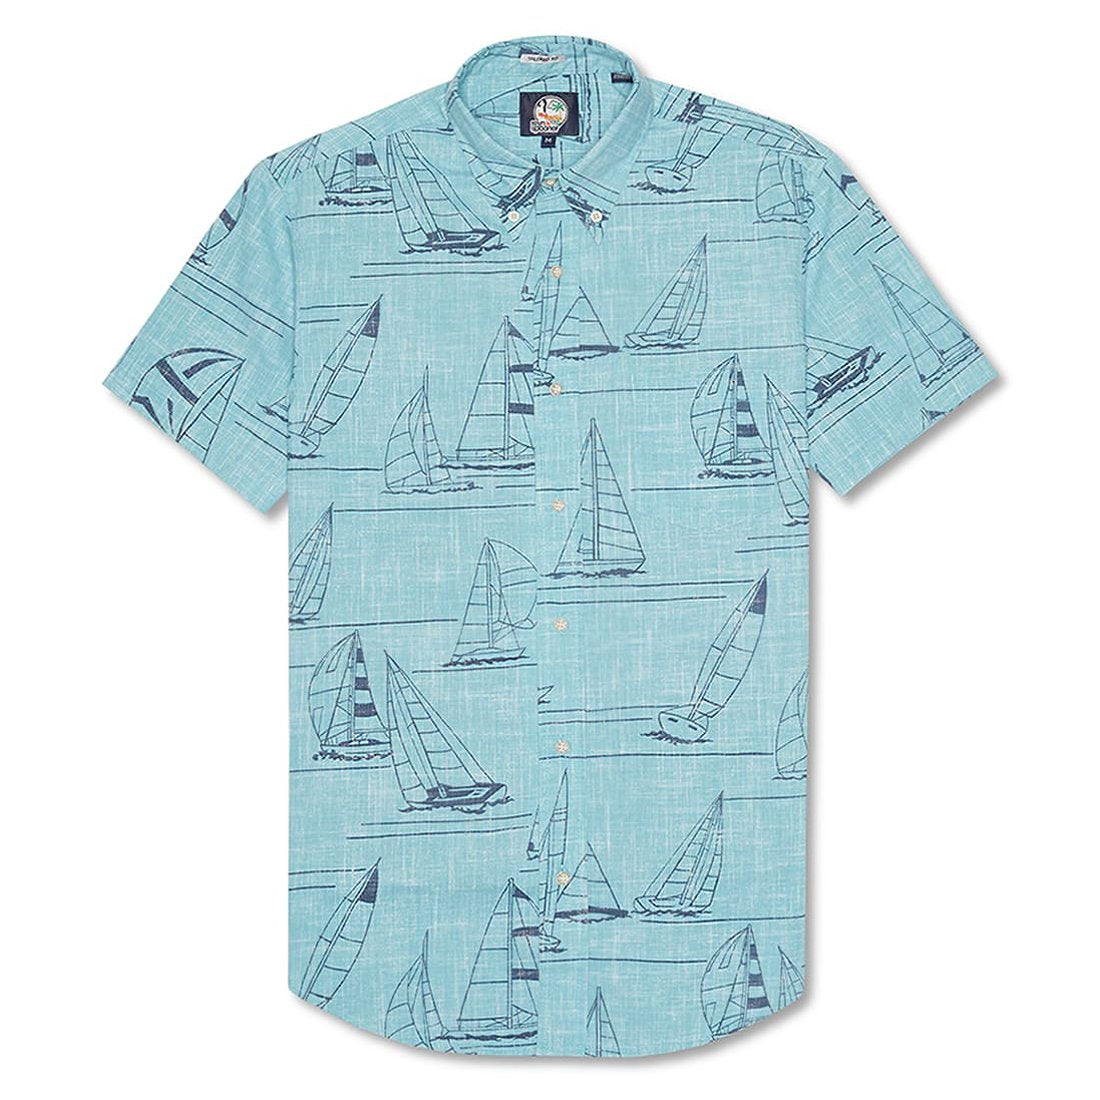 NEWPORT 2 HONOLULU / WEEKEND WASH TAILORED FIT - Zoomed